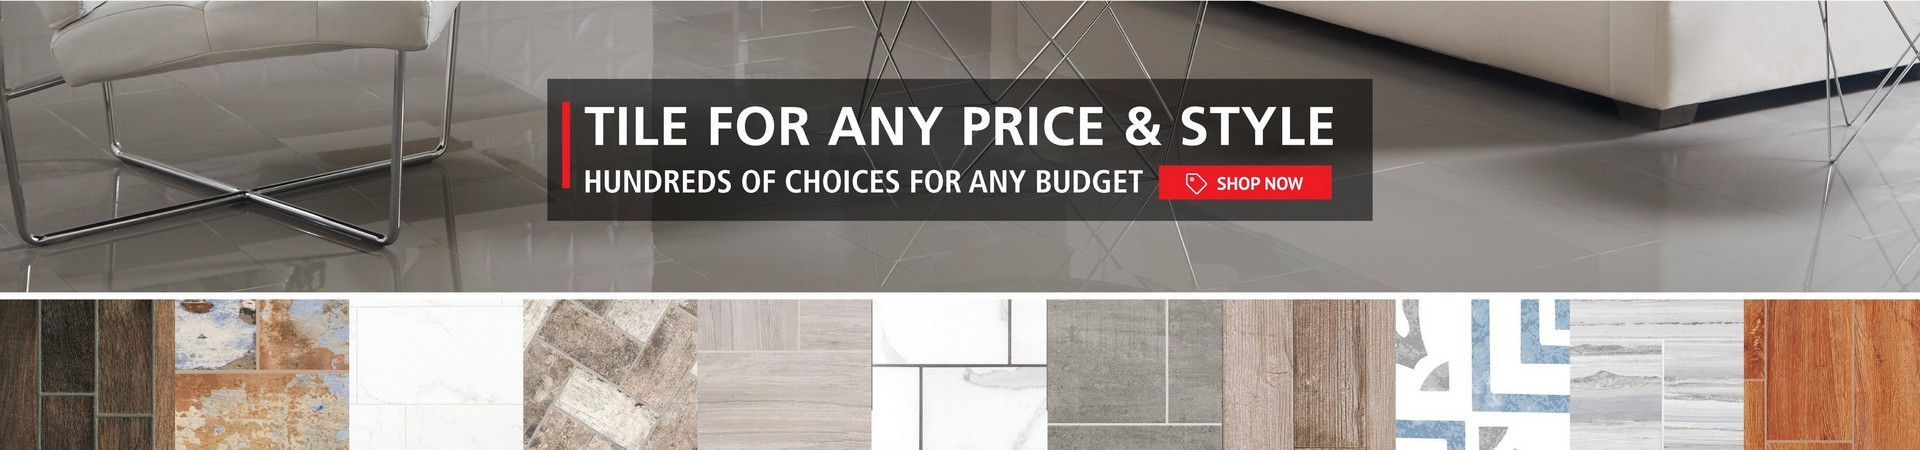 Tile for Any Price and Style